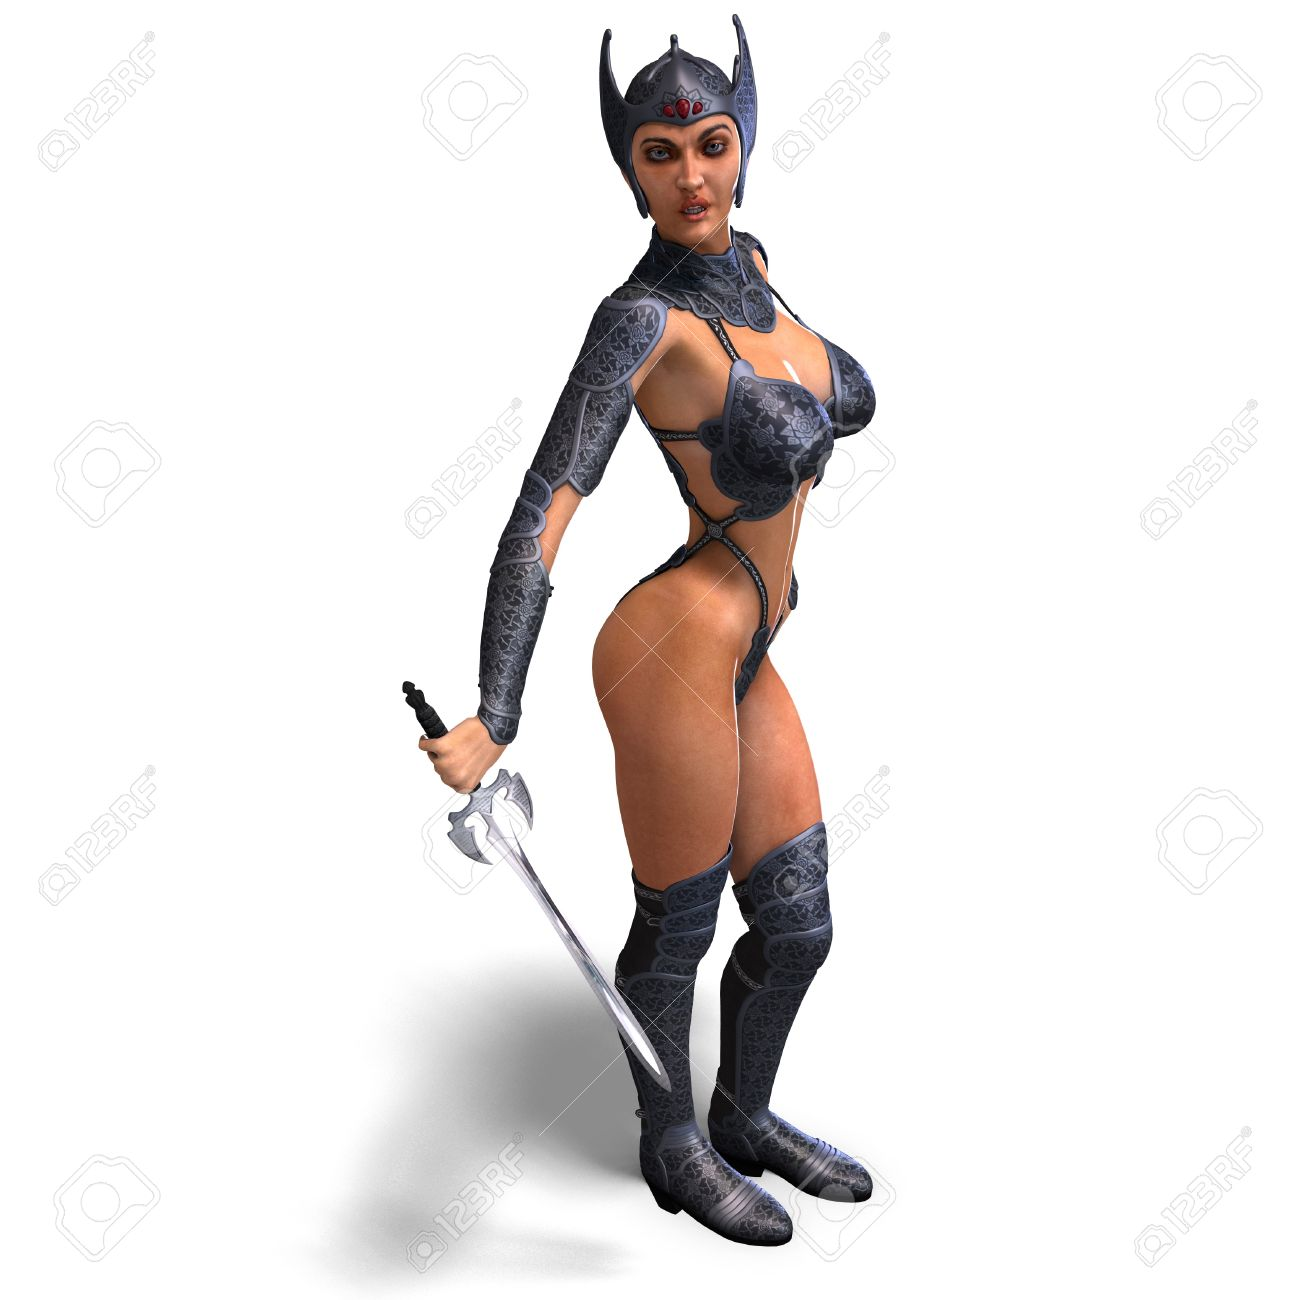 Female Amazon Warrior With Sword And Armor Stock Photo, Picture.